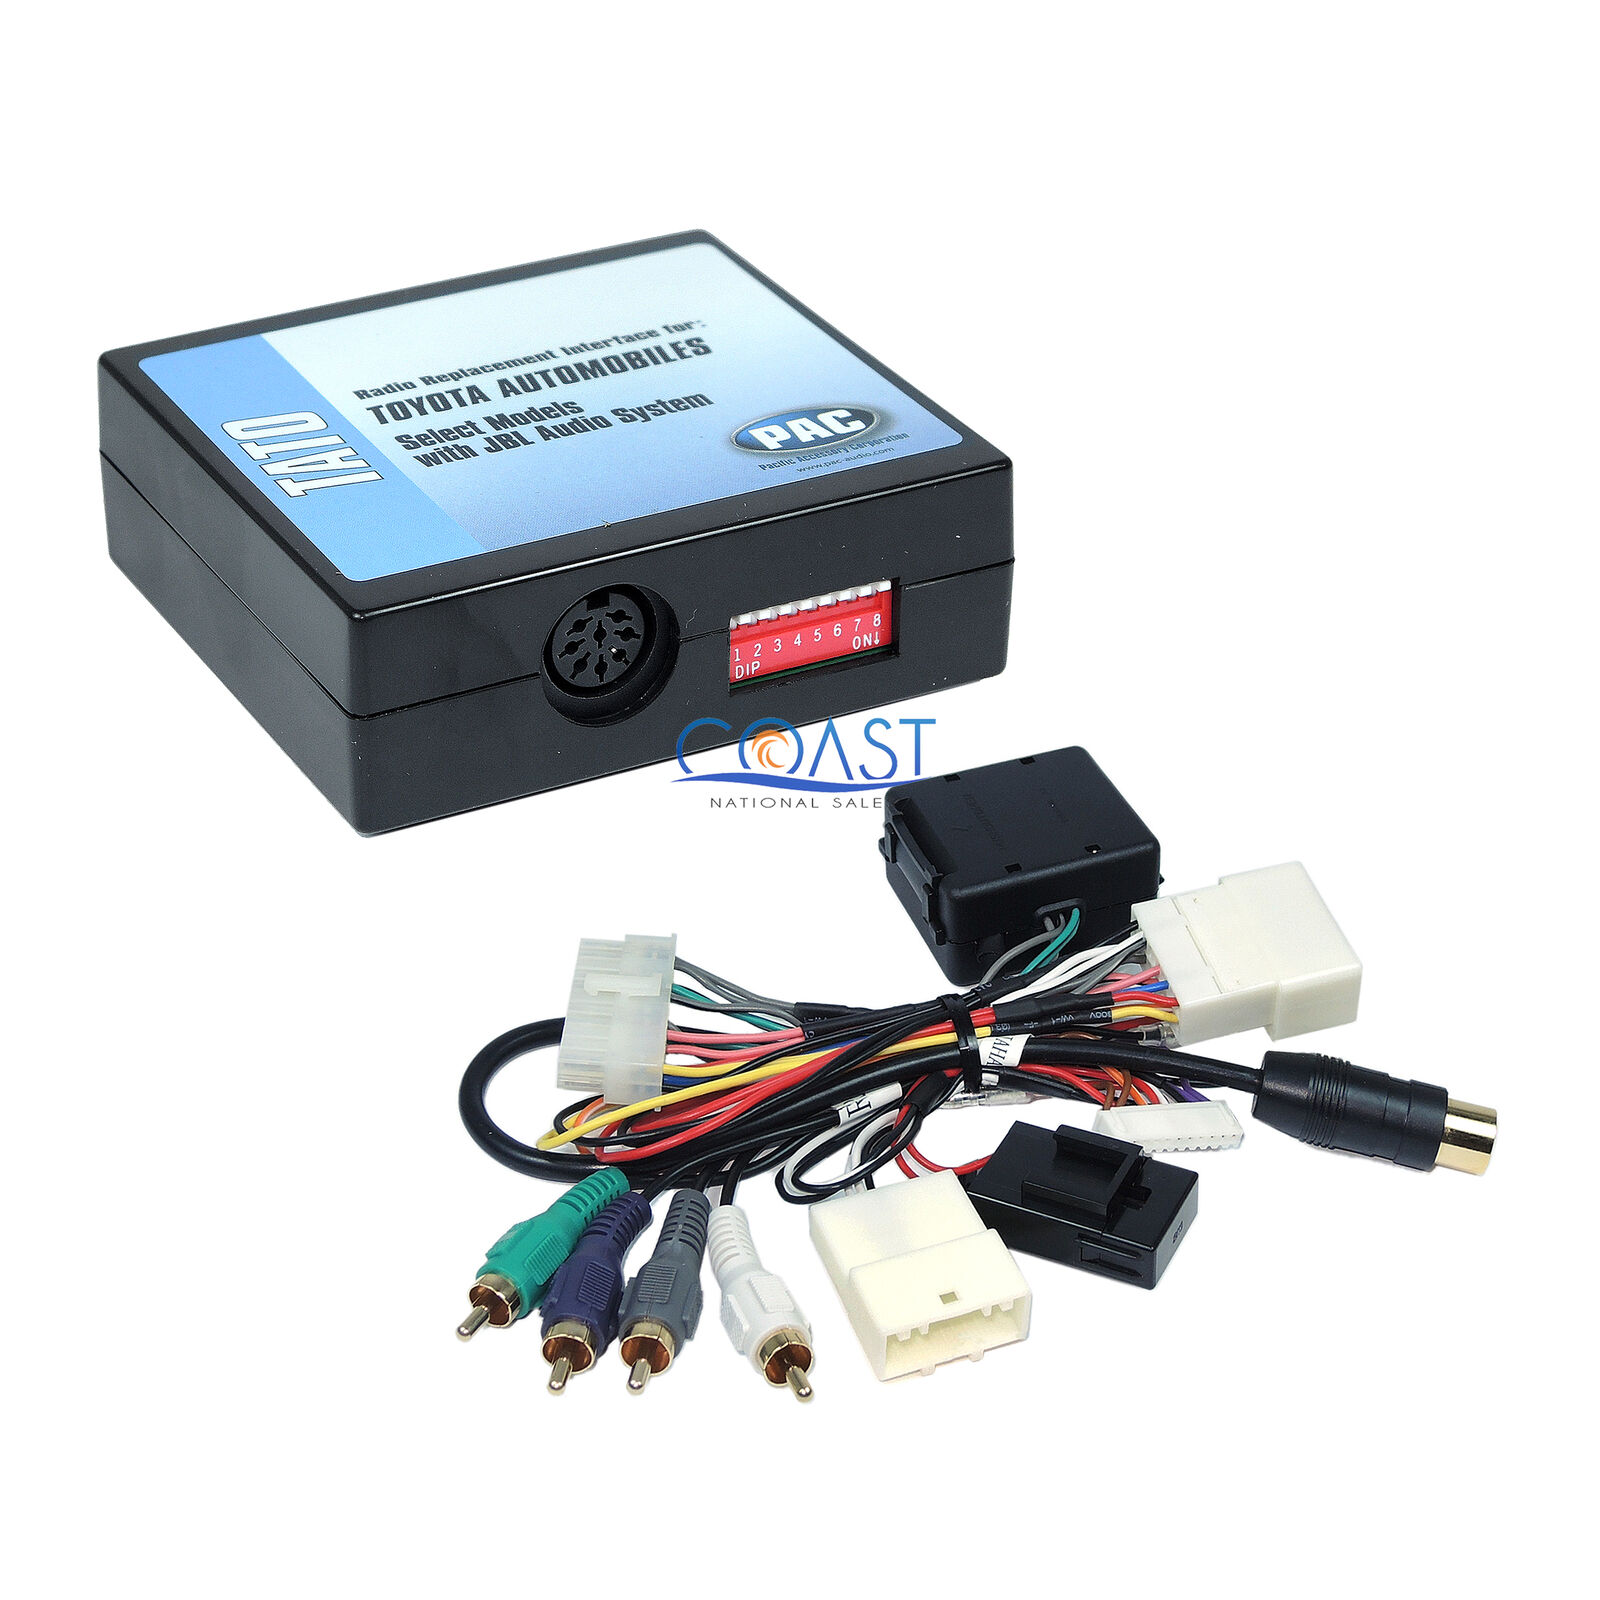 Car Radio Stereo JBL System Amplifier Wiring Interface for 2003-up Toyota  Lexus 1 of 3FREE Shipping ...